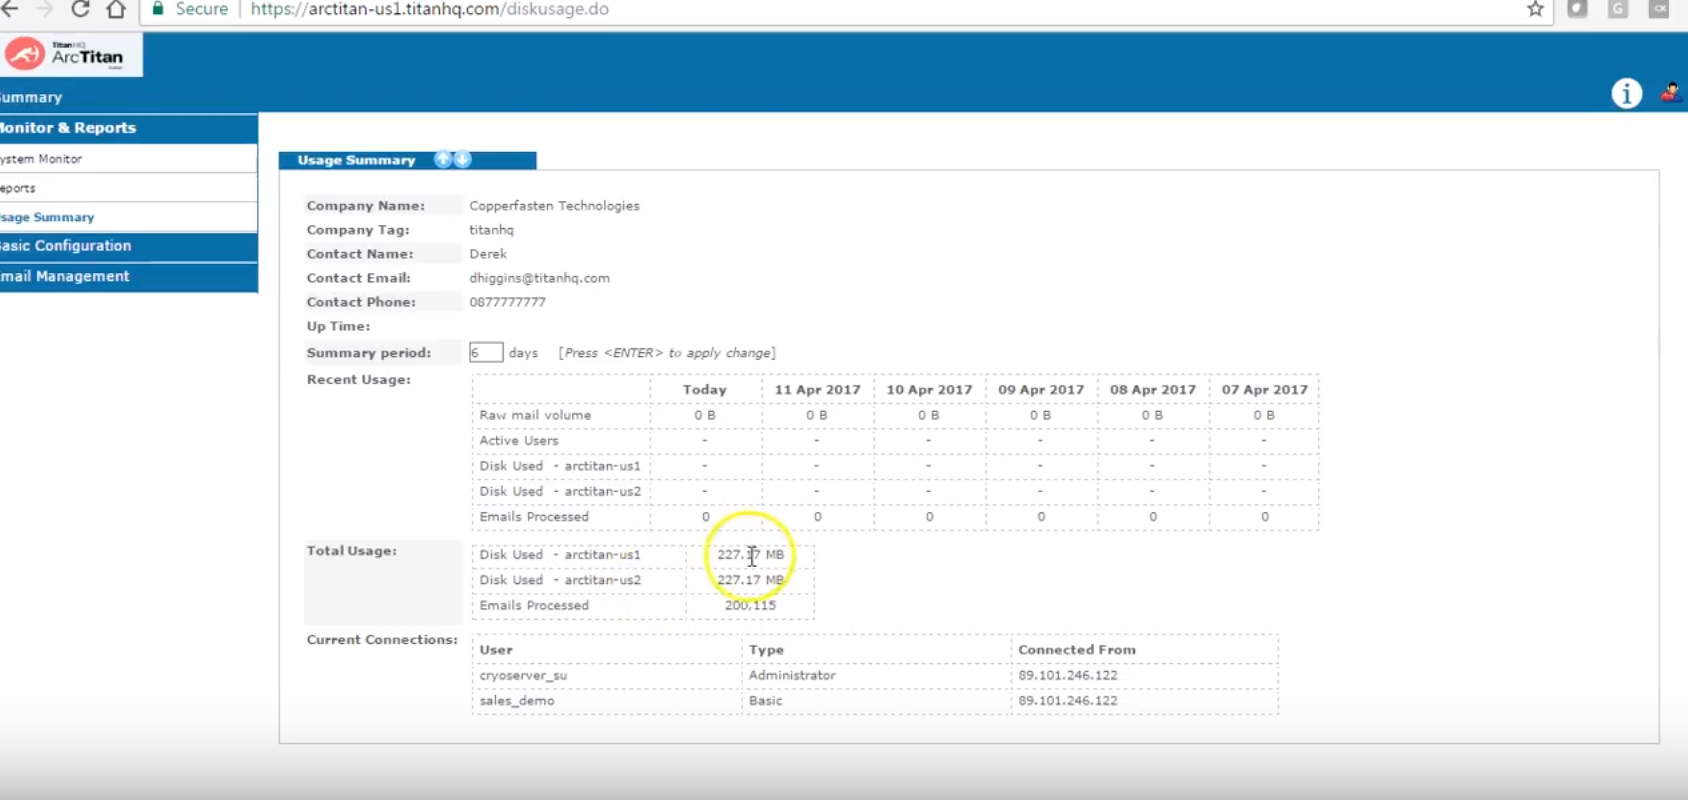 View a usage summary to identify how much storage space is being leveraged